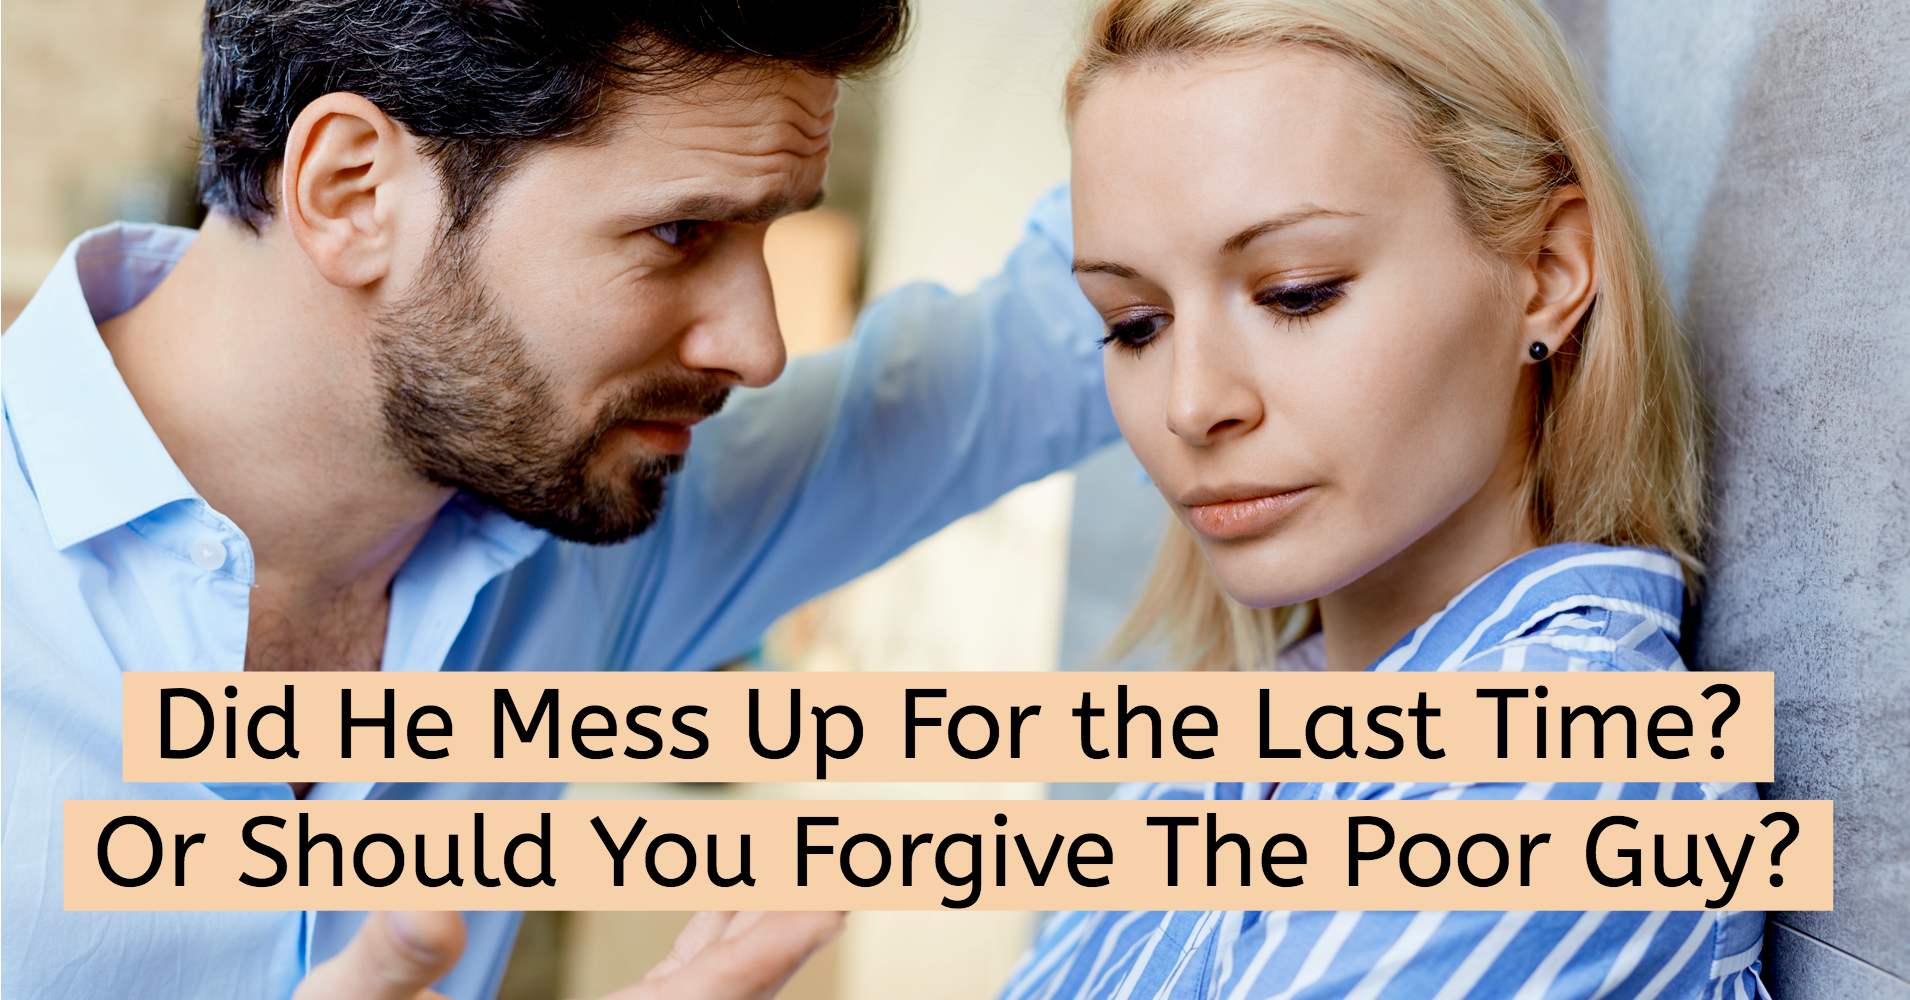 Messed Up Life Quotes: Should I Forgive Him?